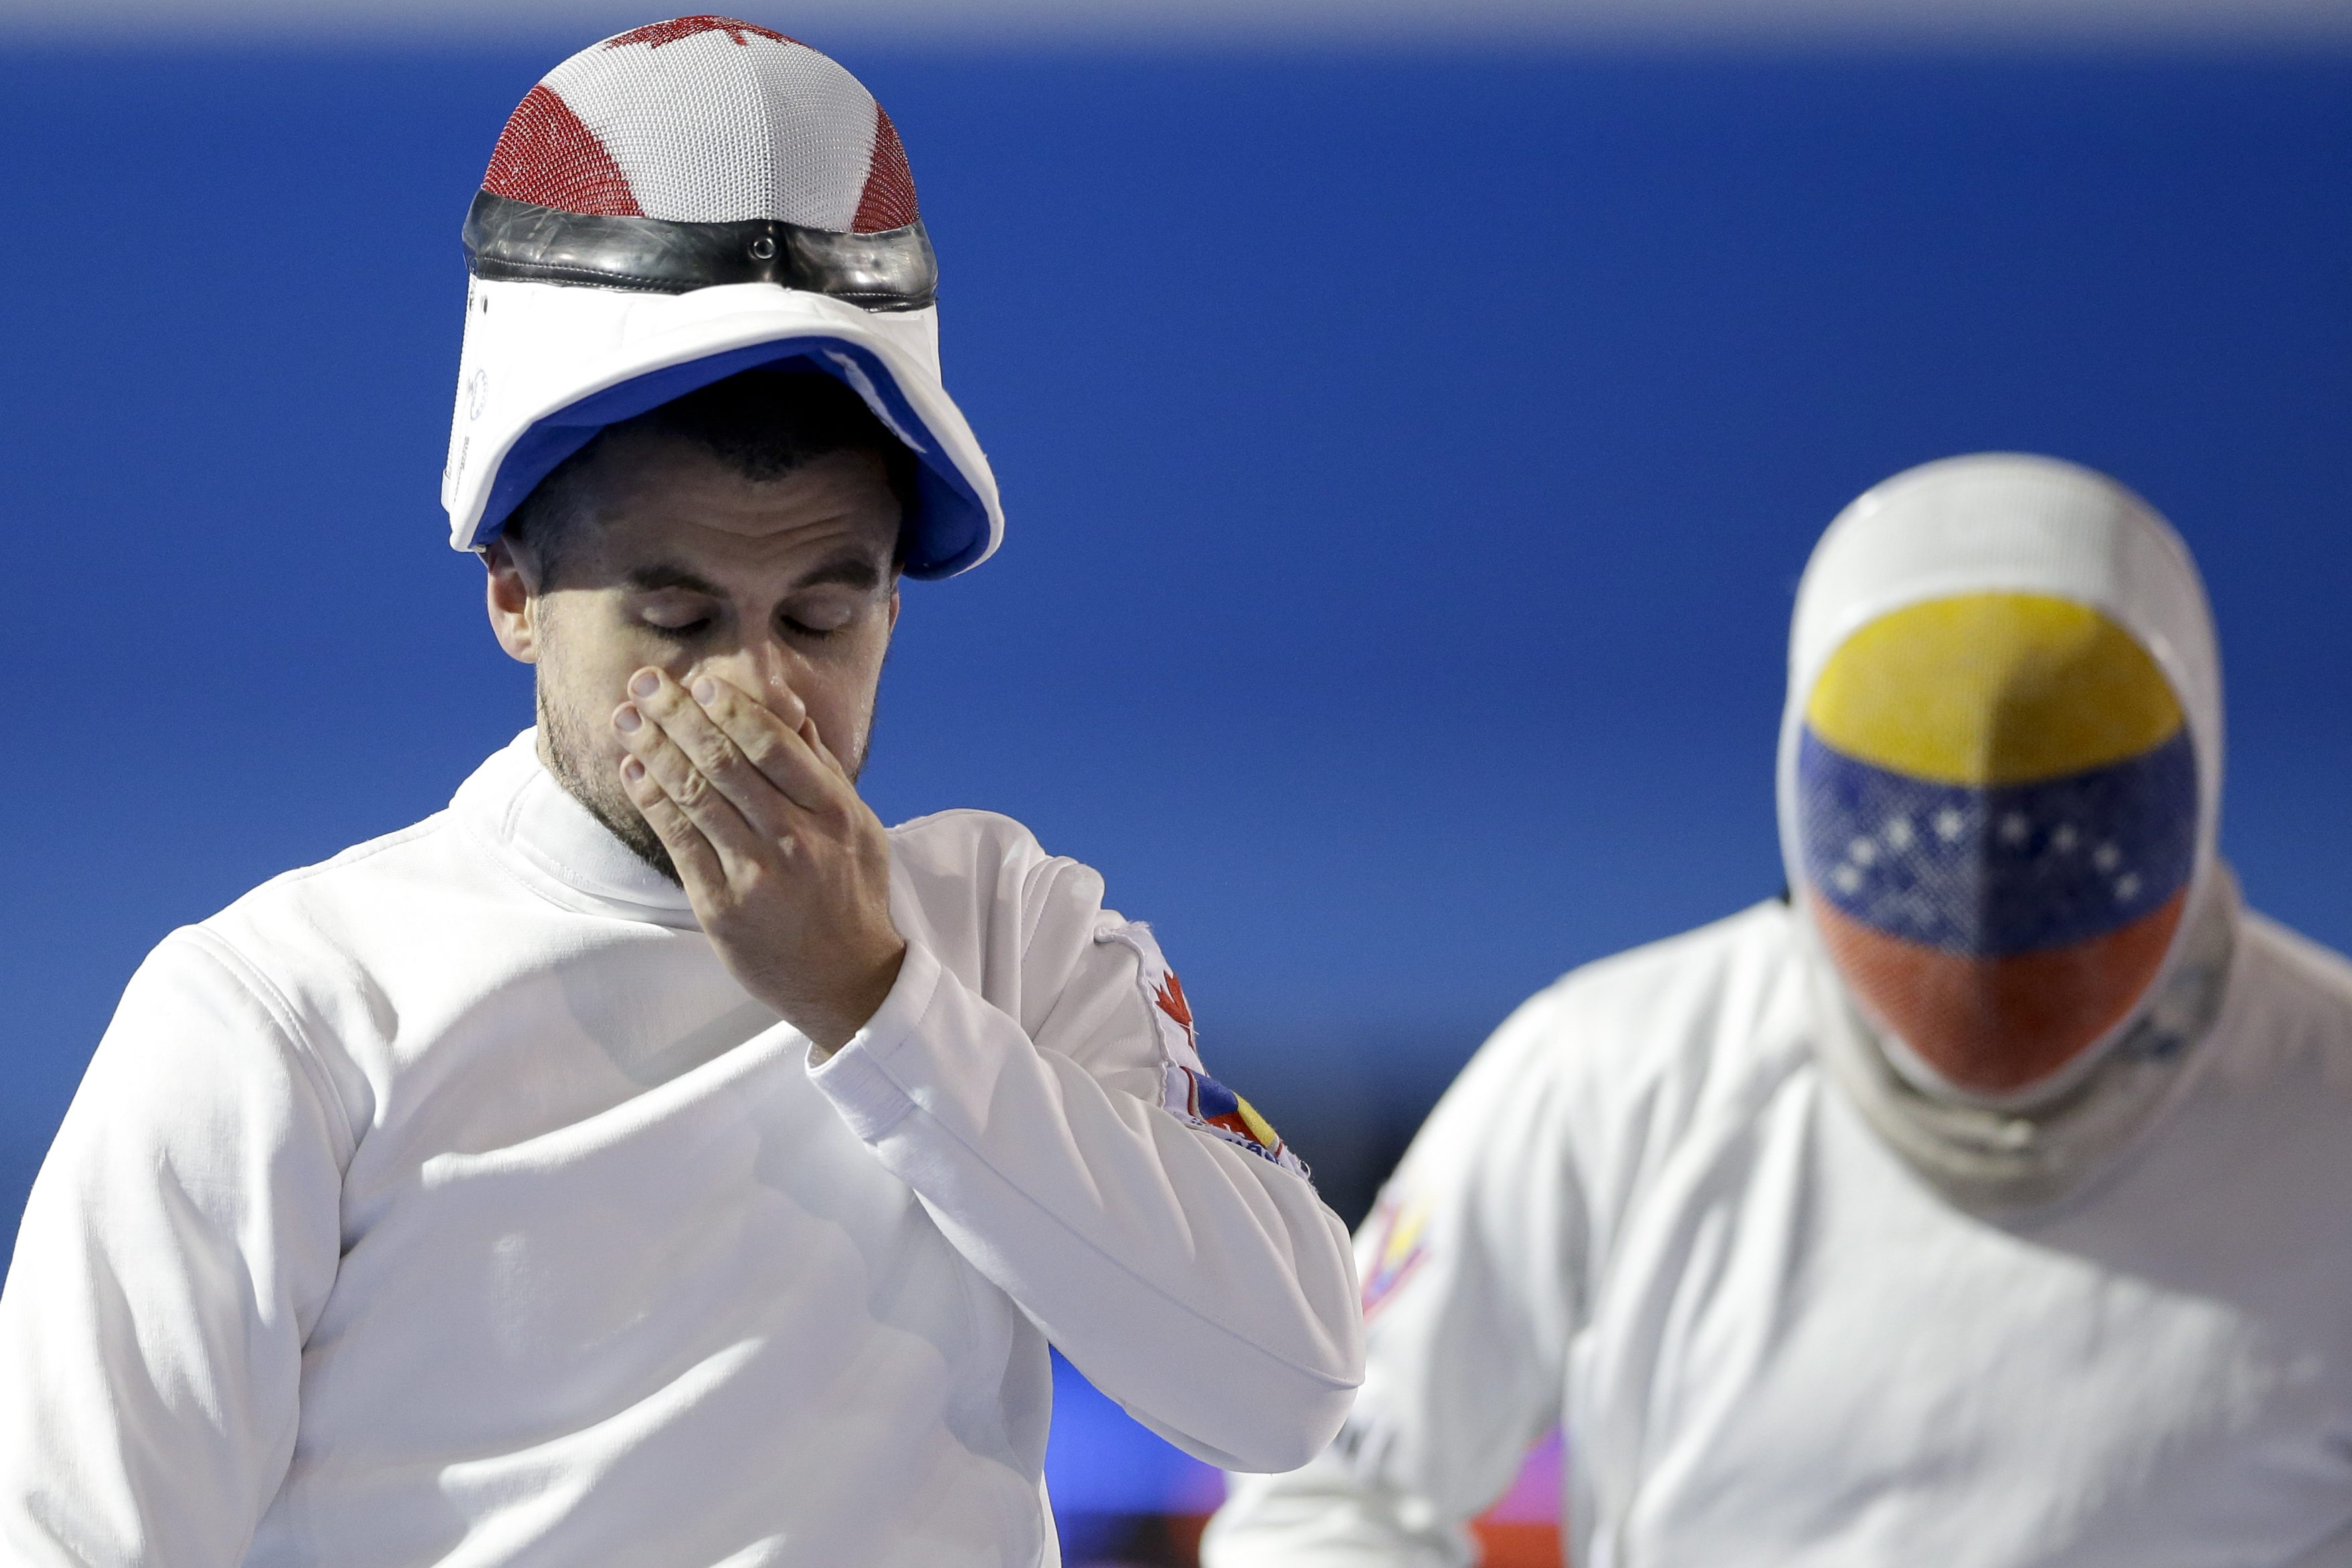 Canada's Maxime Brinck-Croteau, left, reacts during his epee bout against Venezuela's Ruben Limardo, right, in fencing competition in the Pan Am Games in Toronto Tuesday, July 21, 2015. Limardo won, 15-0. (AP Photo/Gregory Bull)